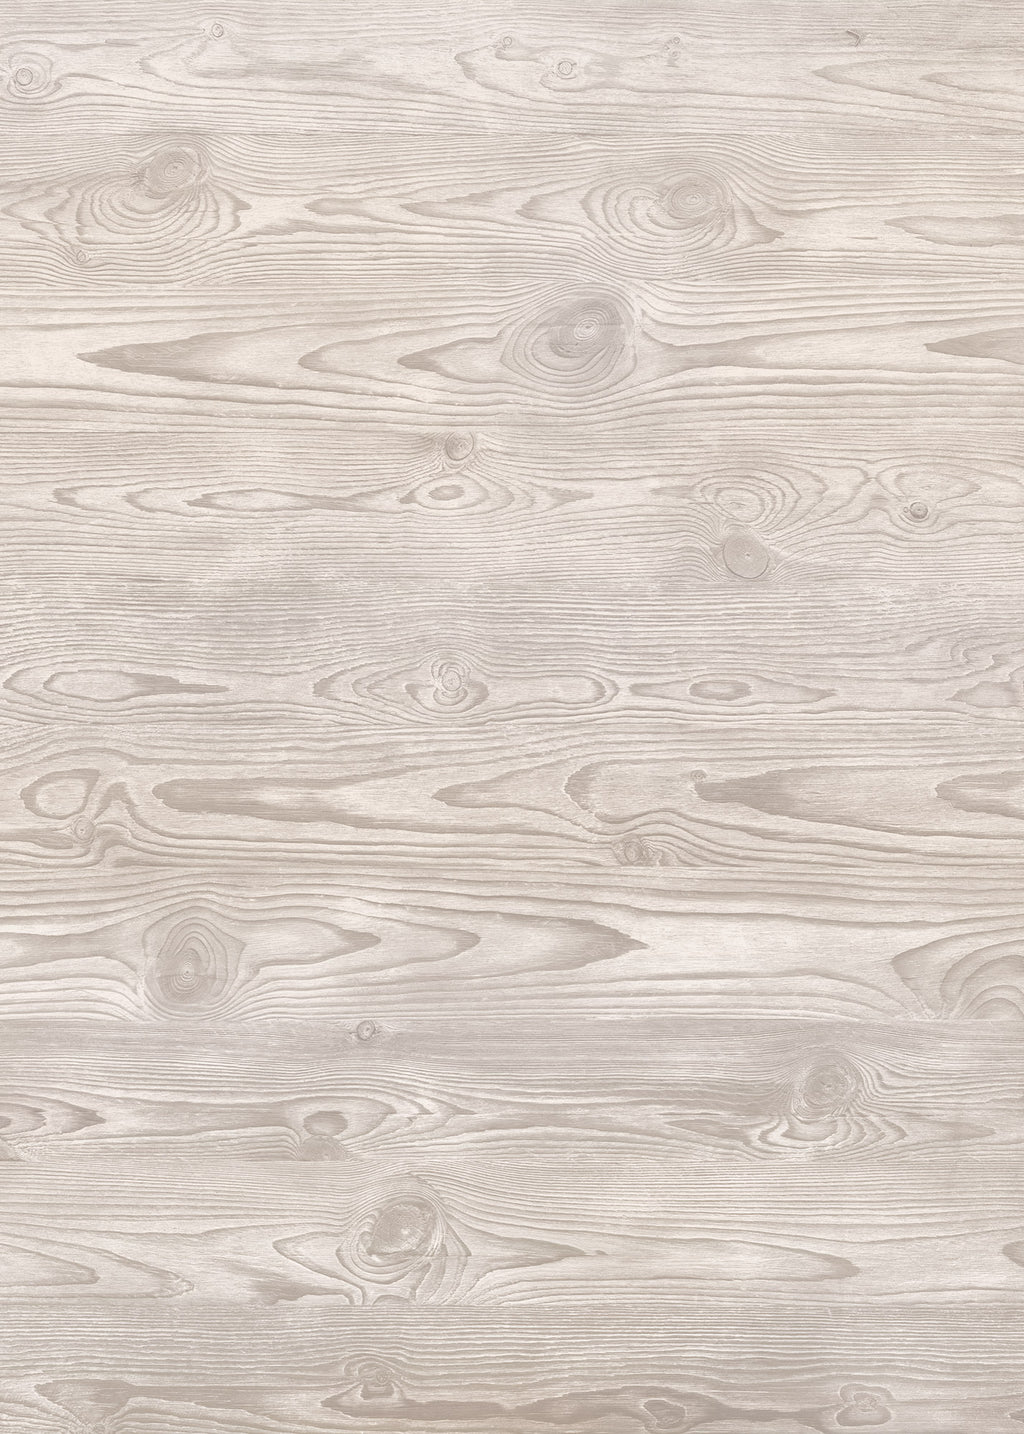 Ghost Wood Large Vinyl Photography Backdrop by Club Backdrops